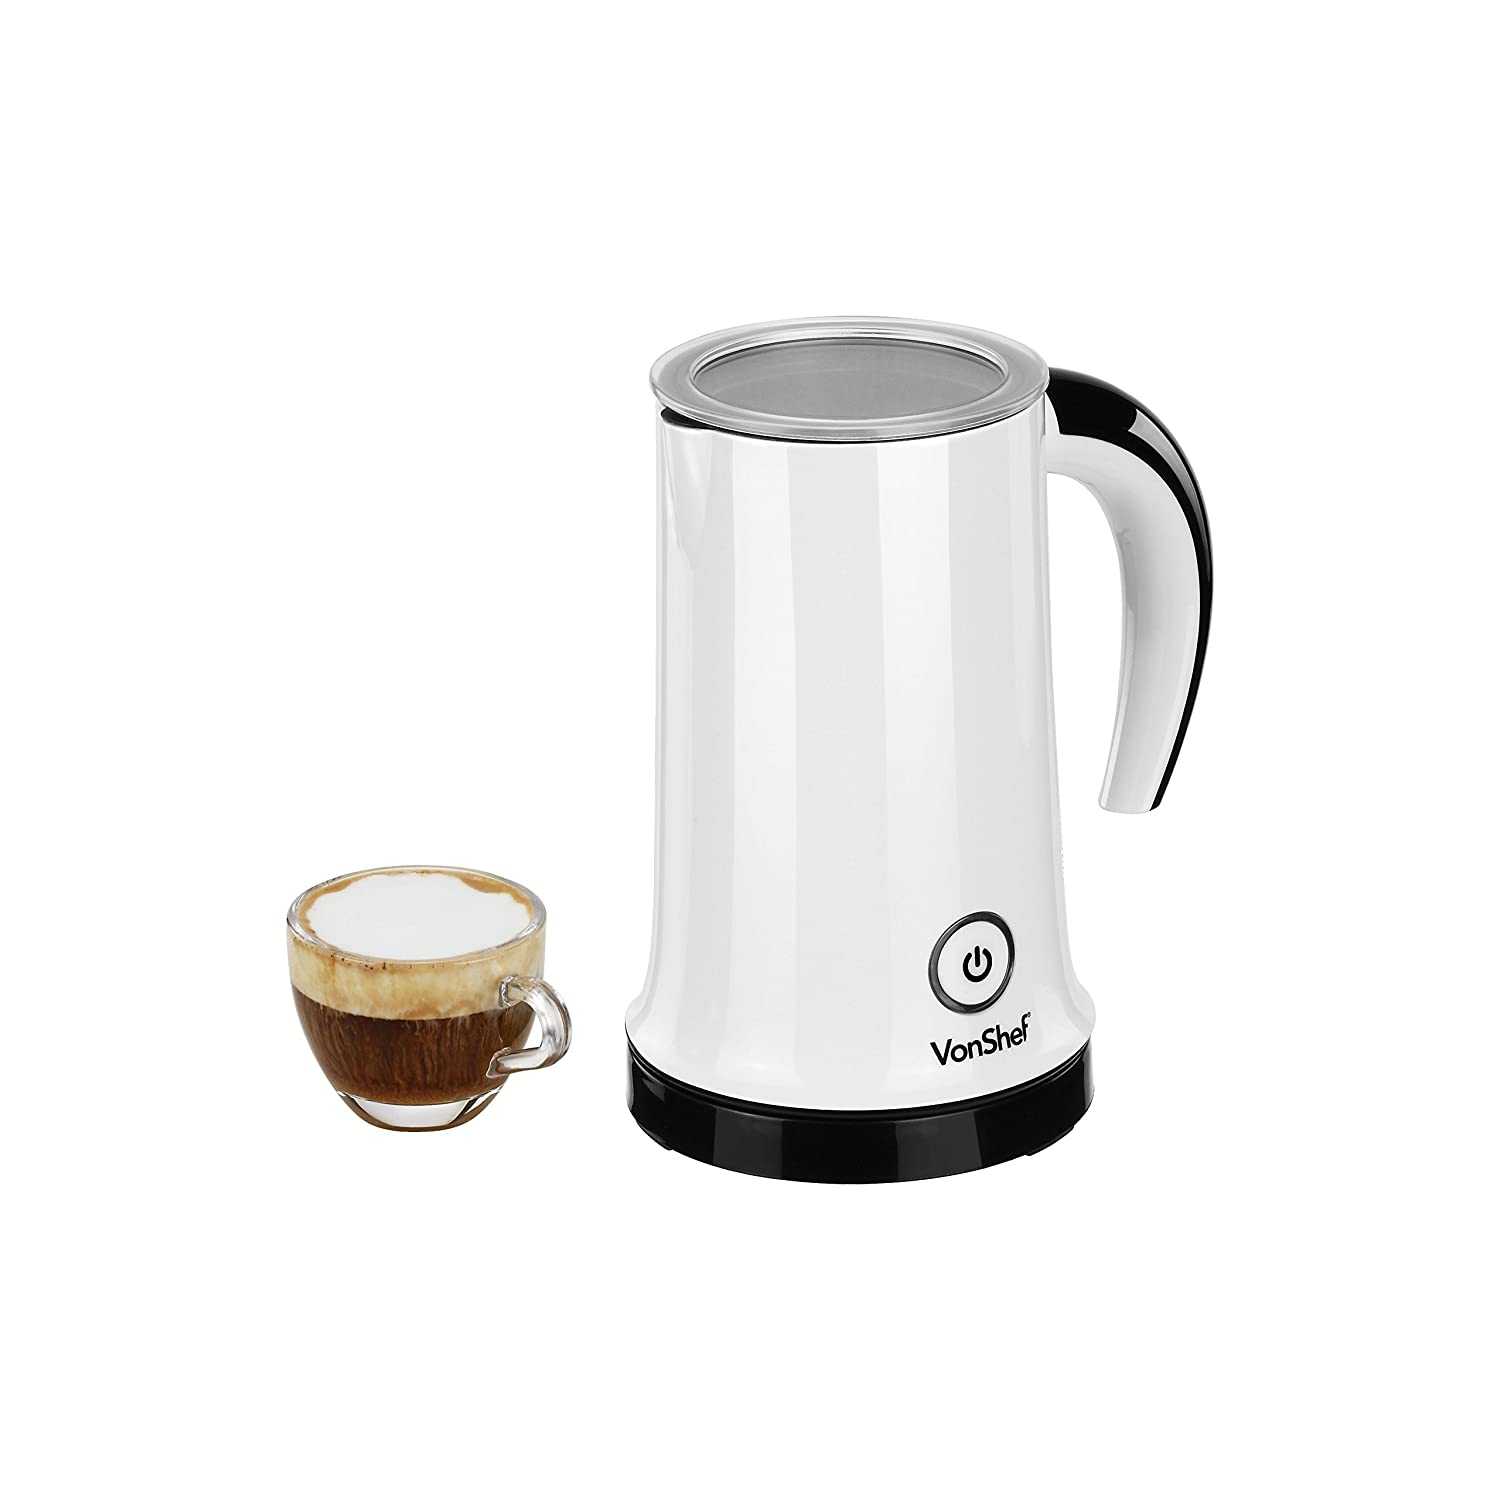 VonShef Automatic Electric Milk Frother and Heater Carafe - Stylish White